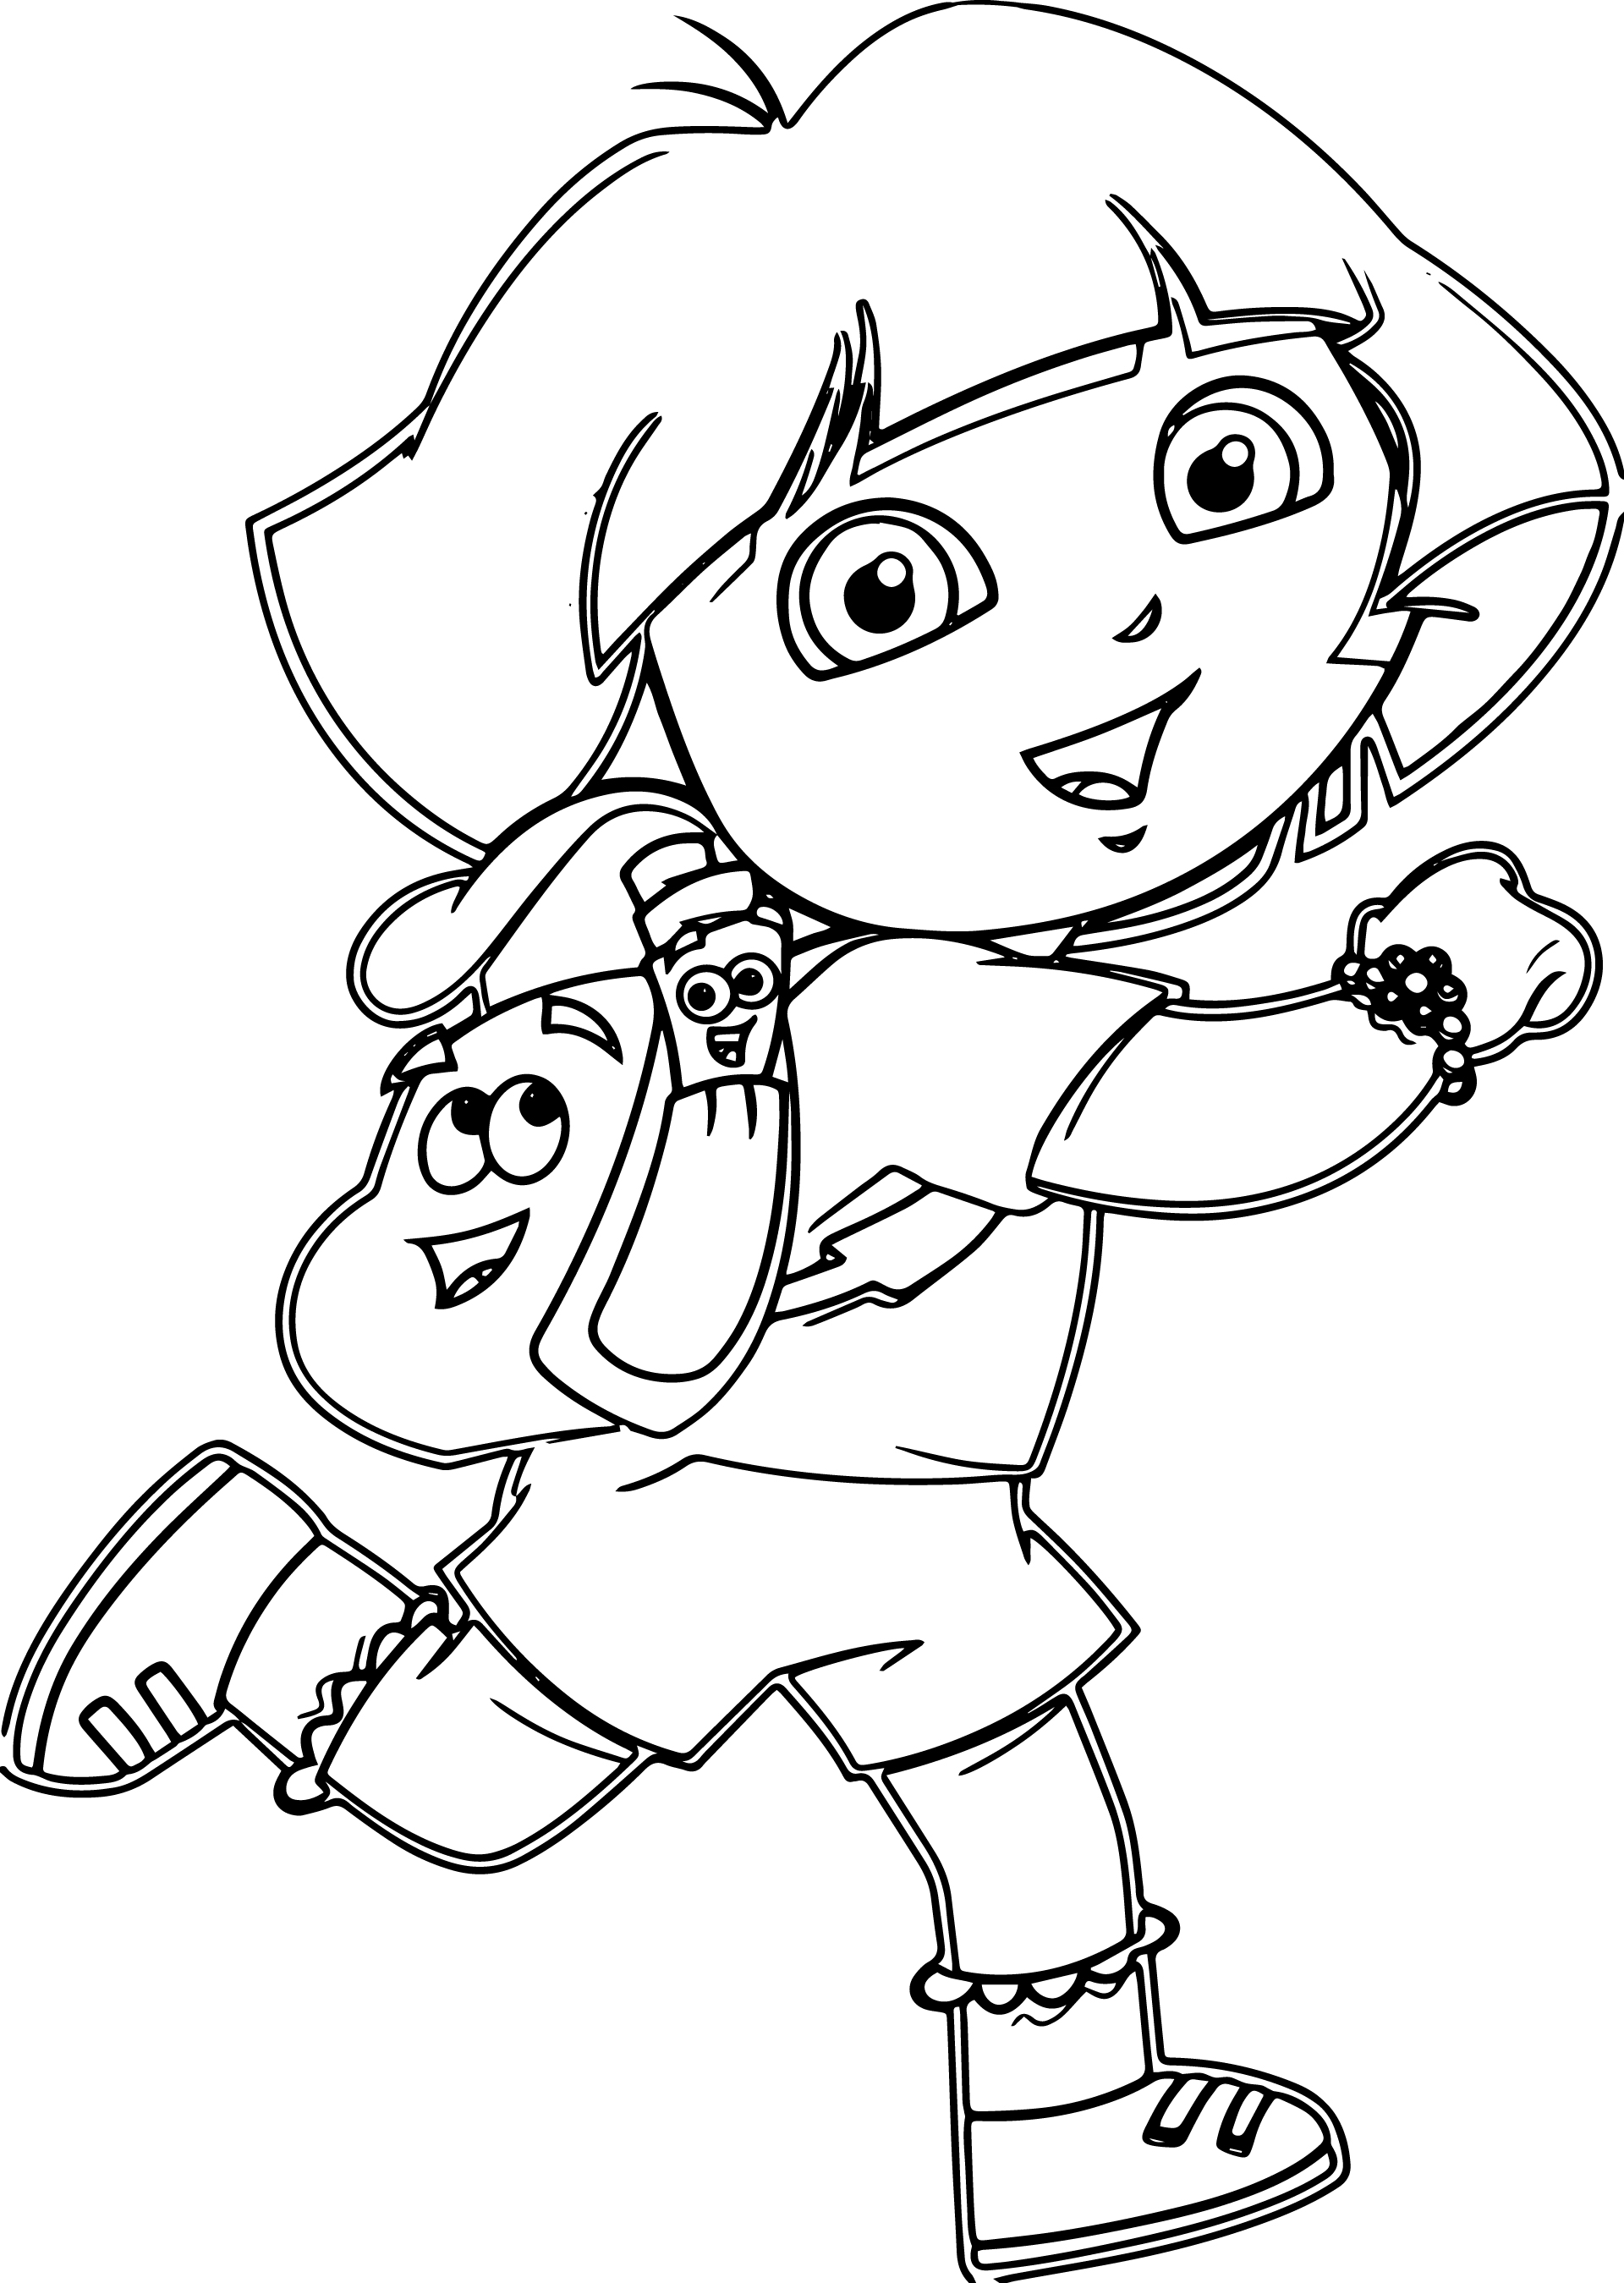 dora drawing pictures dora drawing pictures at getdrawings free download pictures drawing dora